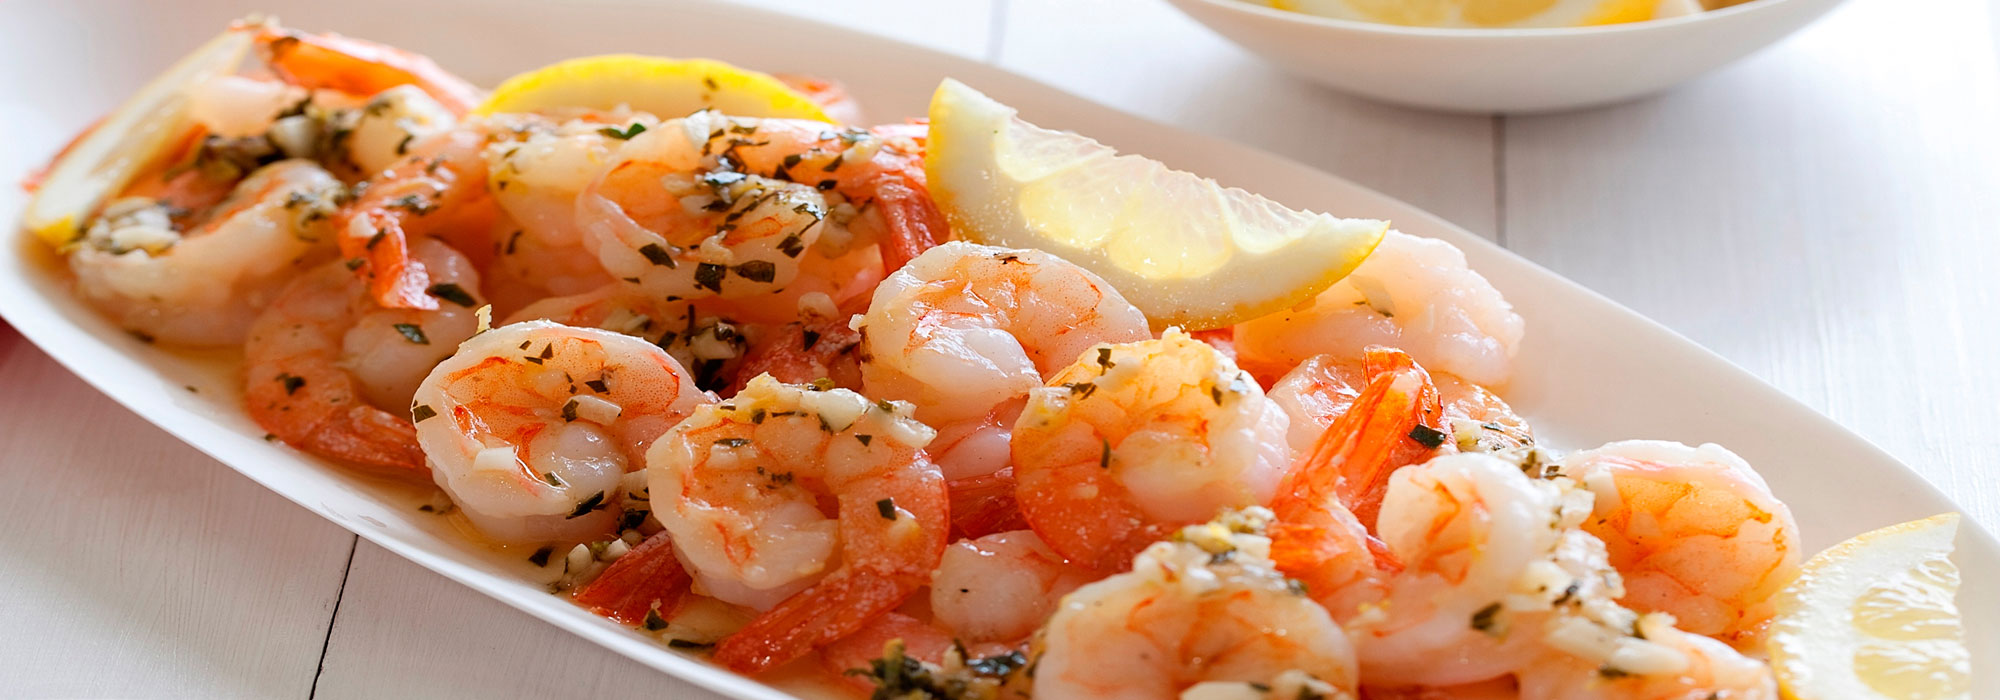 COASTAL LIGHT FOODSTUFF Trading LLC : Seafood dubai,Frozen